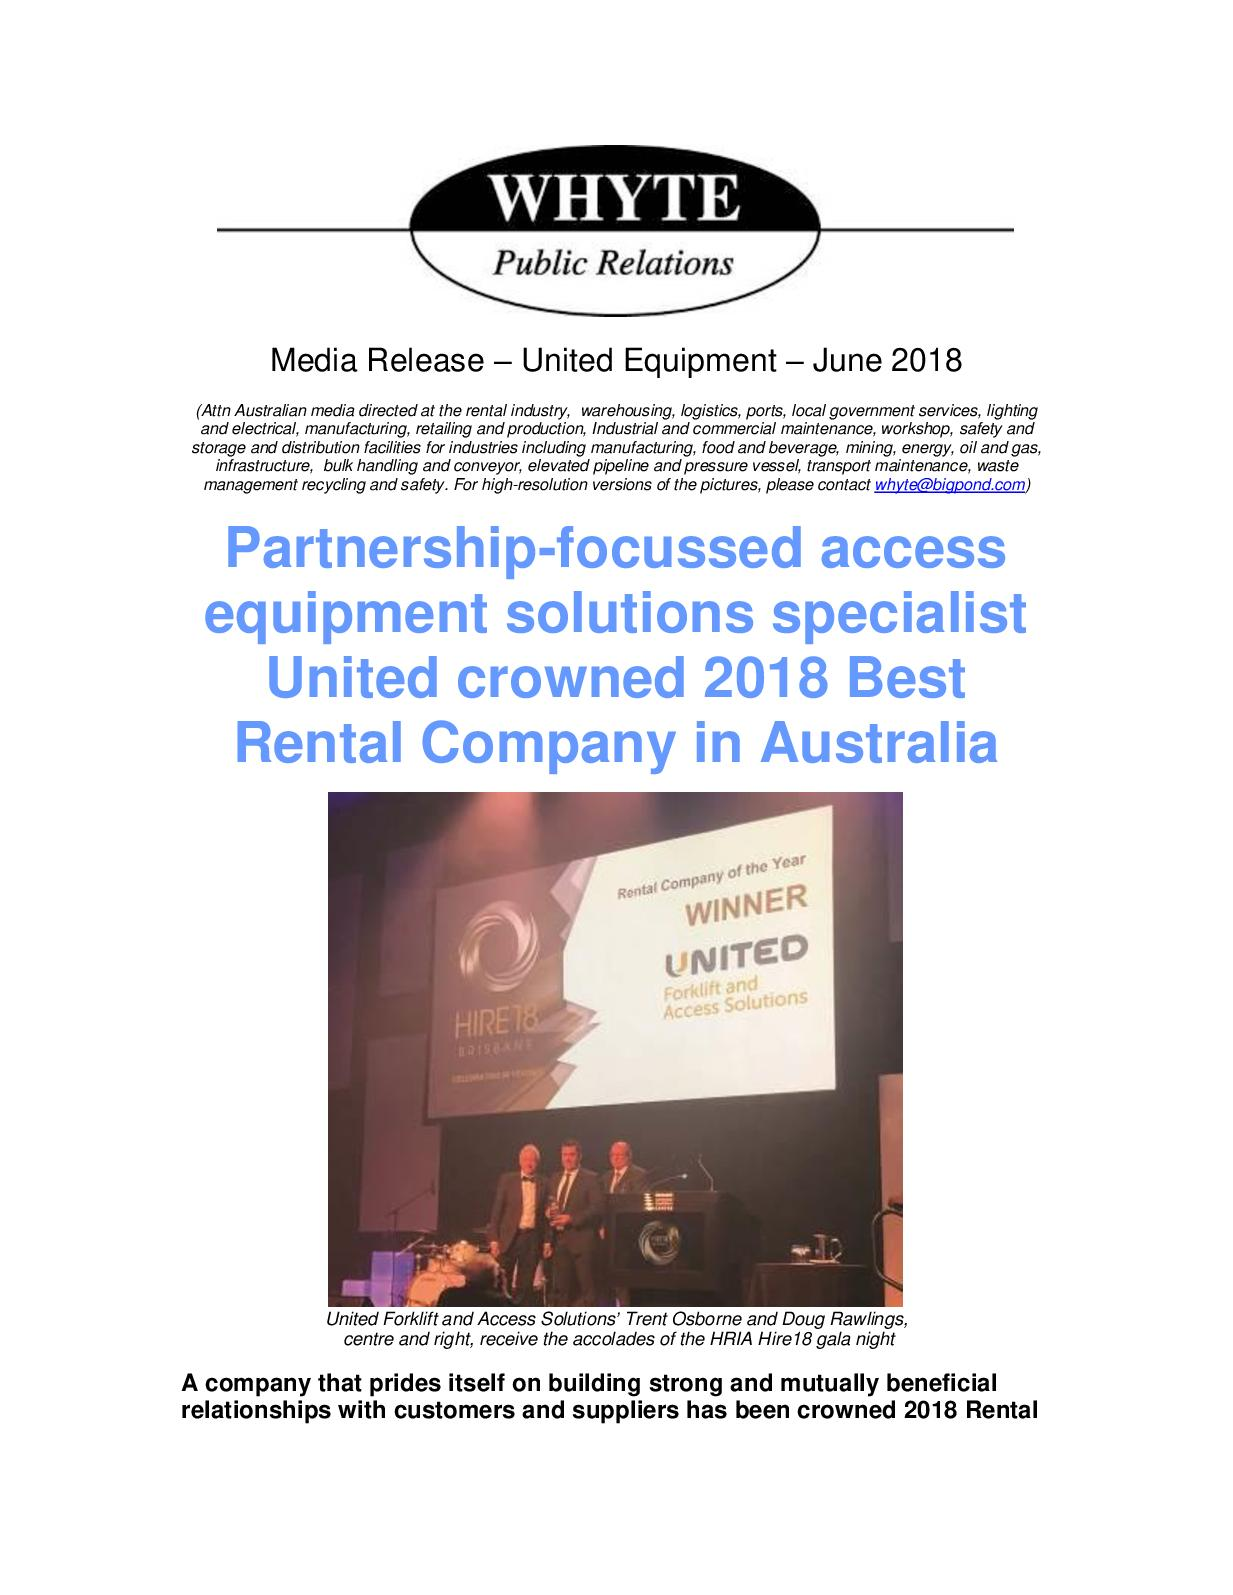 Calaméo - Rental Company Of The Year United Equipment 2018